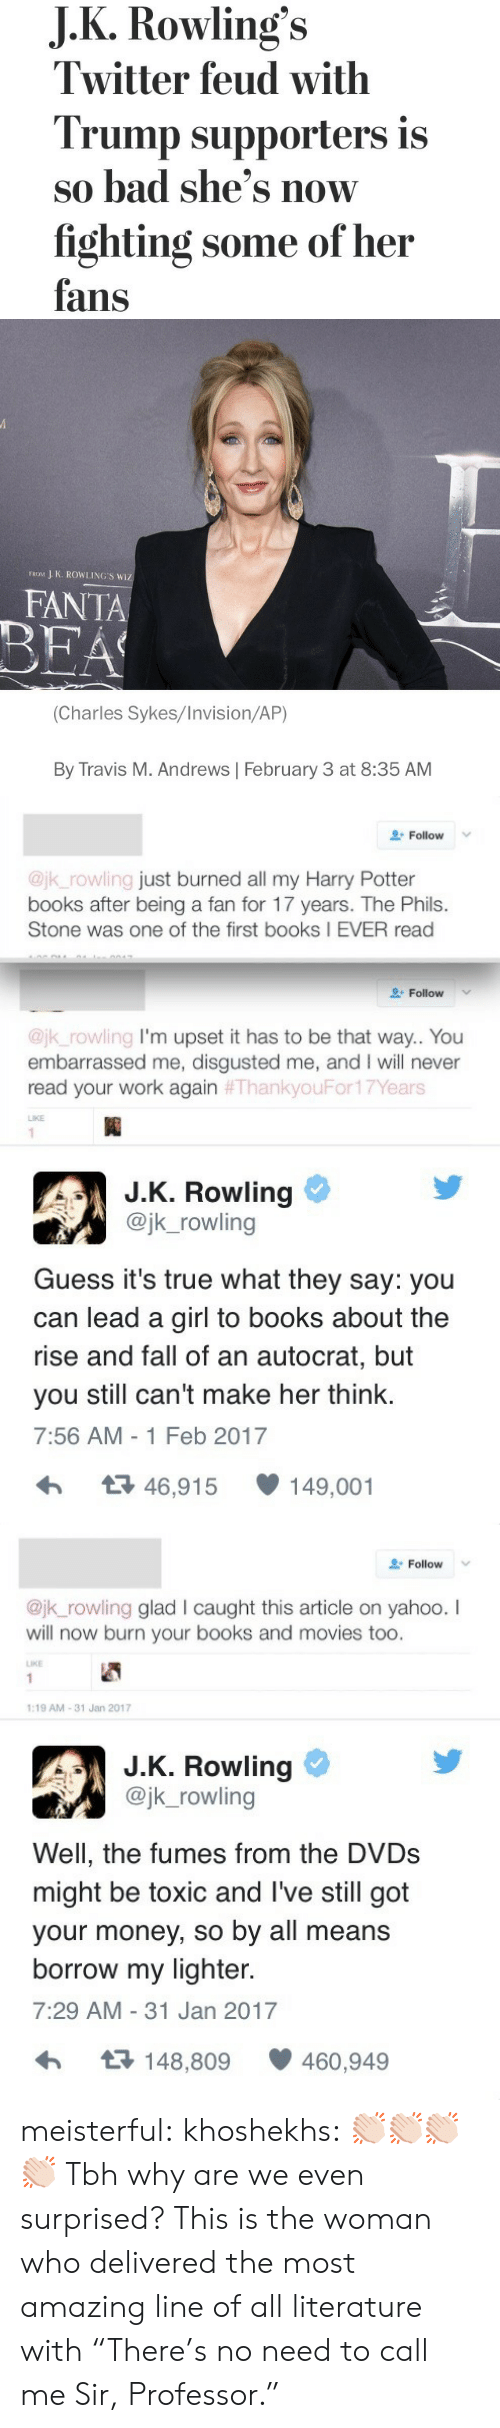 "Feb 2017: J.K.Rowling's  Twitter feud with  Trump supporters is  so bad she's now  fighting some of her  fans   J K. ROWLING'S WIZ  FROM  FANTA  BEA  (Charles Sykes/Invision/AP)  By Travis M. Andrews February 3 at 8:35 AM   Follow  @jk_rowling just burned all my Harry Potter  books after being a fan for 17 years. The Phils.  Stone was one of the first books I EVER read  Follow  @jk_rowling I'm upset it has to be that way.. You  embarrassed me, disgusted me, and I will never  read your work again #ThankyouFor17Years  LIKE  1  J.K. Rowling  @jk_rowling  Guess it's true what they say: you  can lead a girl to books about the  rise and fall of an autocrat, but  make her think.  you still can't  7:56 AM -1 Feb 2017  t46,915  149,001   Follow  @jk_rowling glad l caught this article on yahoo. I  will now burn your books and movies too.  LIKE  1  1:19 AM-31 Jan 2017  J.K. Rowling  @jk_rowling  Well, the fumes from the DVDS  might be toxic and I've still got  your money, so by all means  borrow my lighter.  7:29 AM 31 Jan 2017  t148,809  460,949 meisterful: khoshekhs: 👏🏻👏🏻👏🏻👏🏻 Tbh why are we even surprised? This is the woman who delivered the most amazing line of all literature with ""There's no need to call me Sir, Professor."""